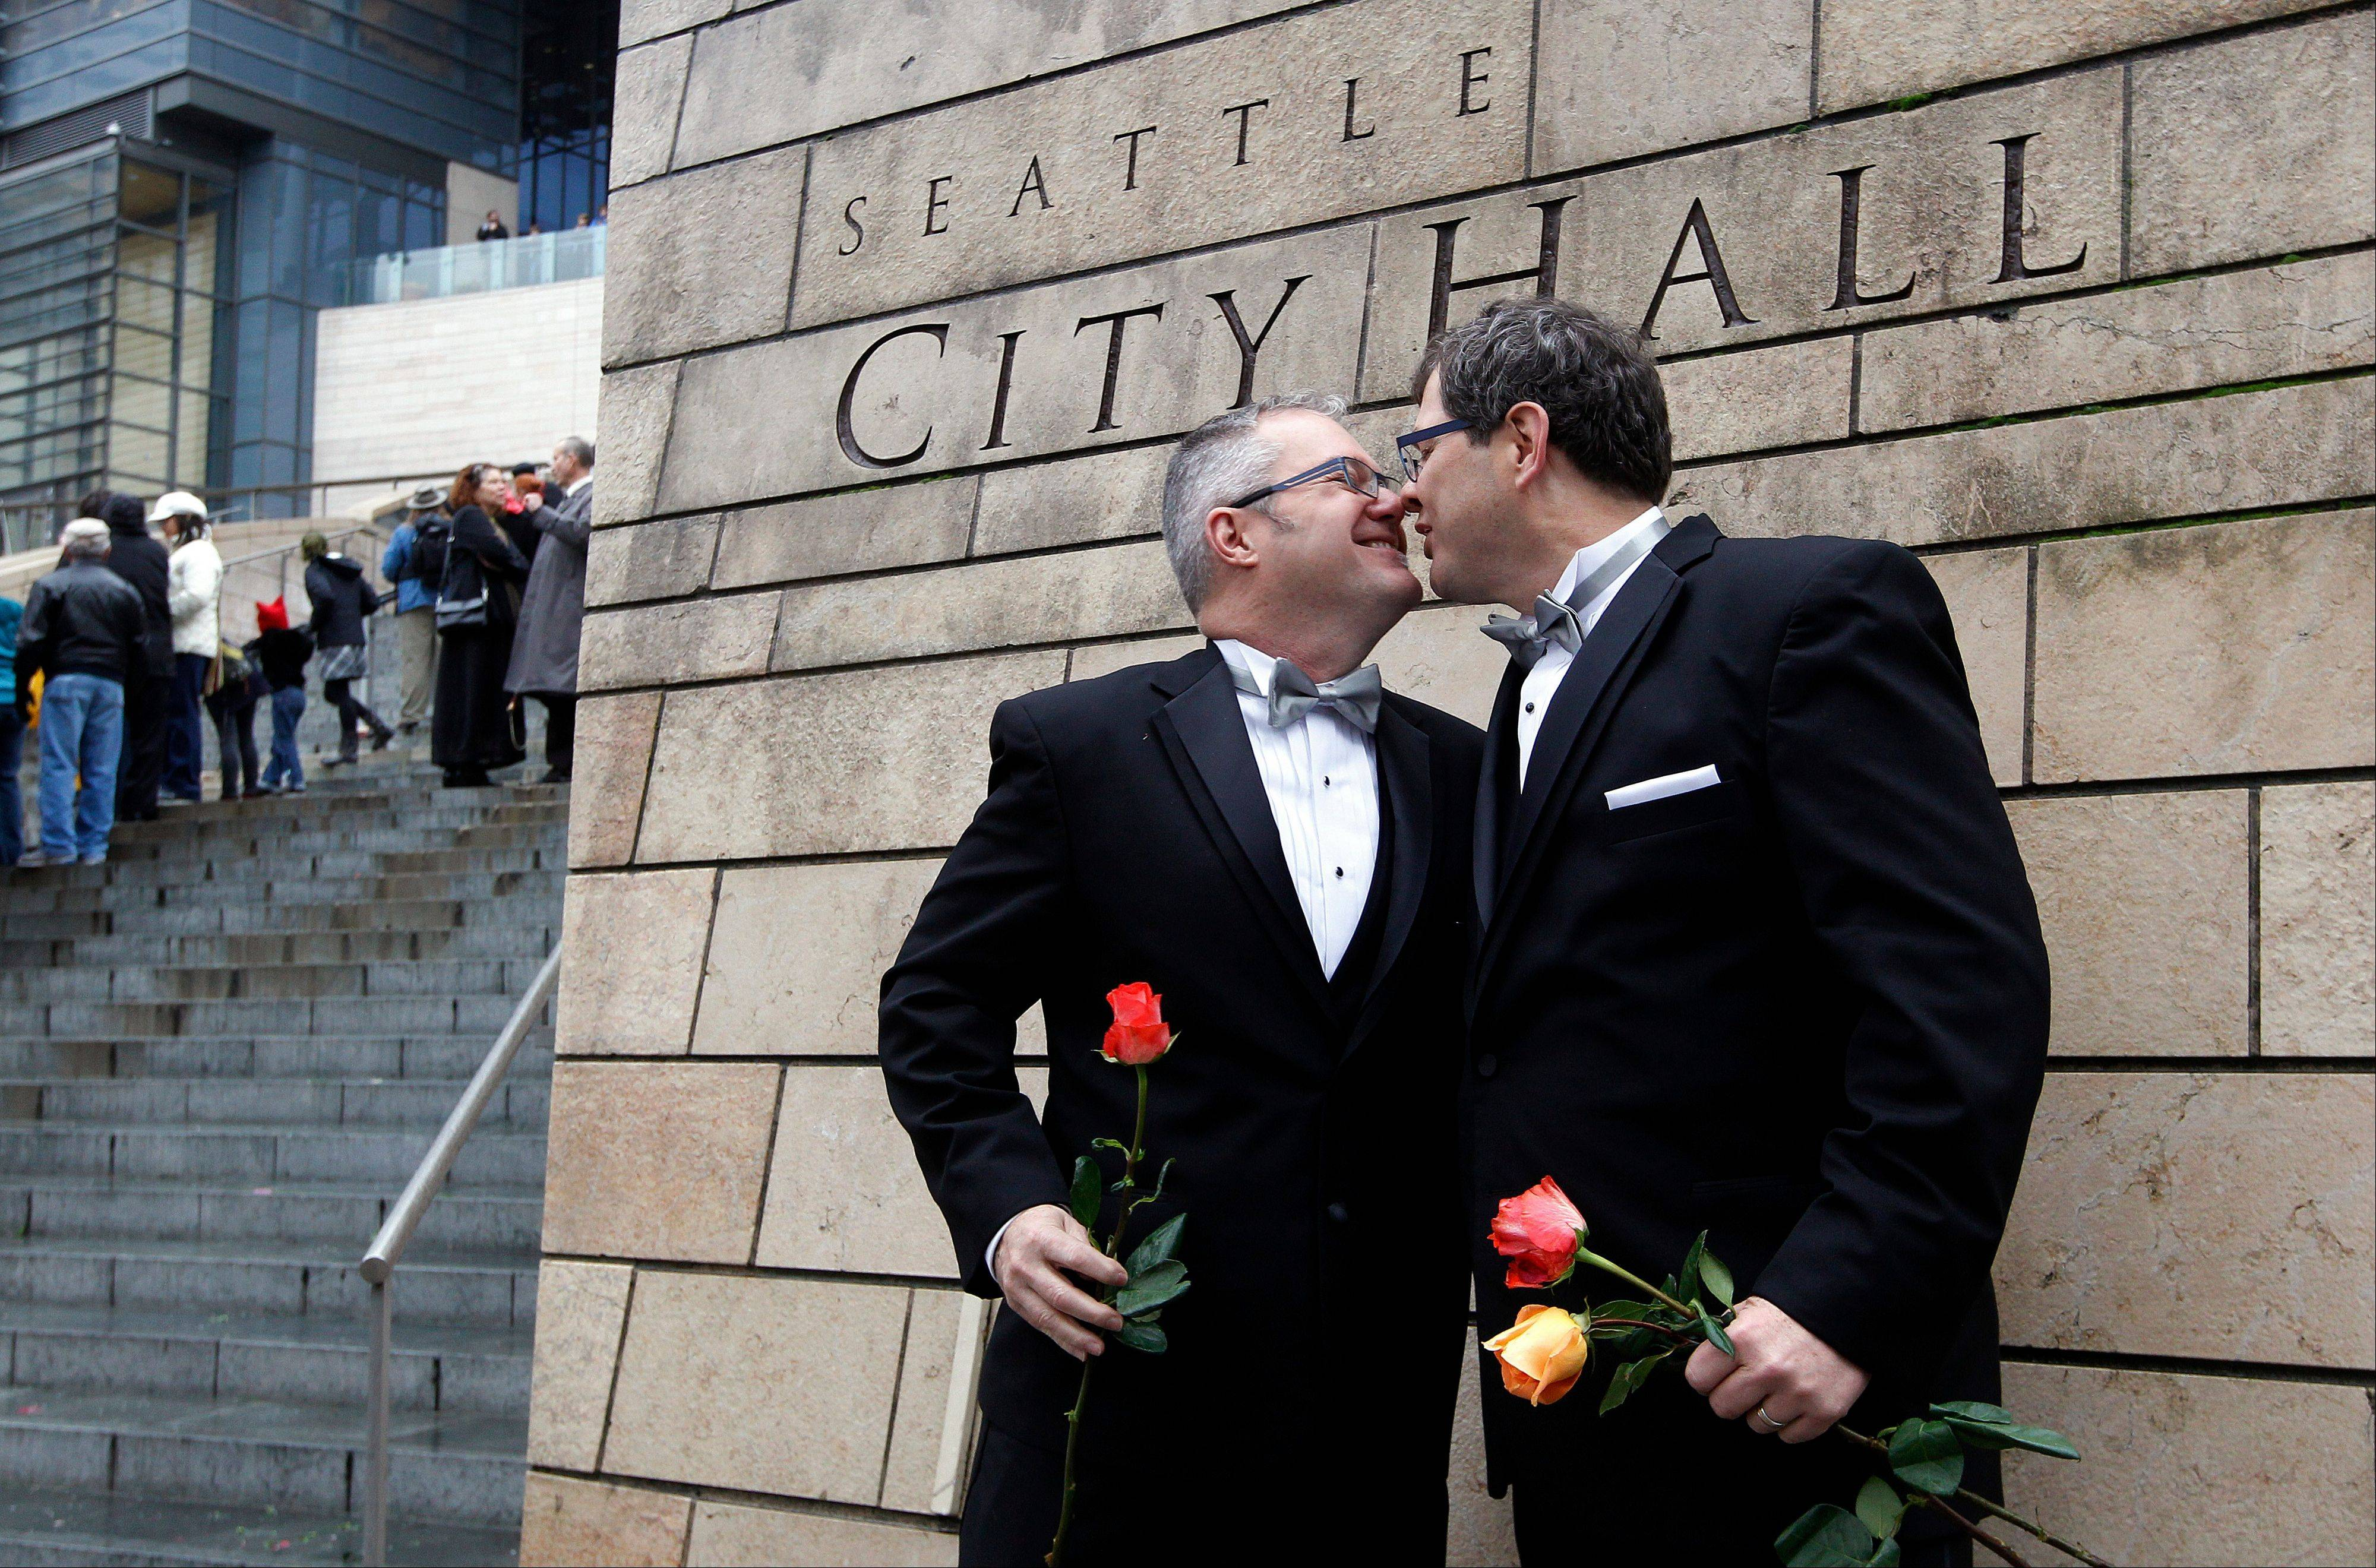 Terry Gilbert, left, kisses his husband Paul Beppler after wedding at Seattle City Hall, becoming among the first gay couples to legally wed in the state, Sunday, Dec. 9, 2012, in Seattle. Gov. Chris Gregoire signed a voter-approved law legalizing gay marriage Dec. 5 and weddings for gay and lesbian couples began in Washington on Sunday, following the three-day waiting period after marriage licenses were issued earlier in the week.